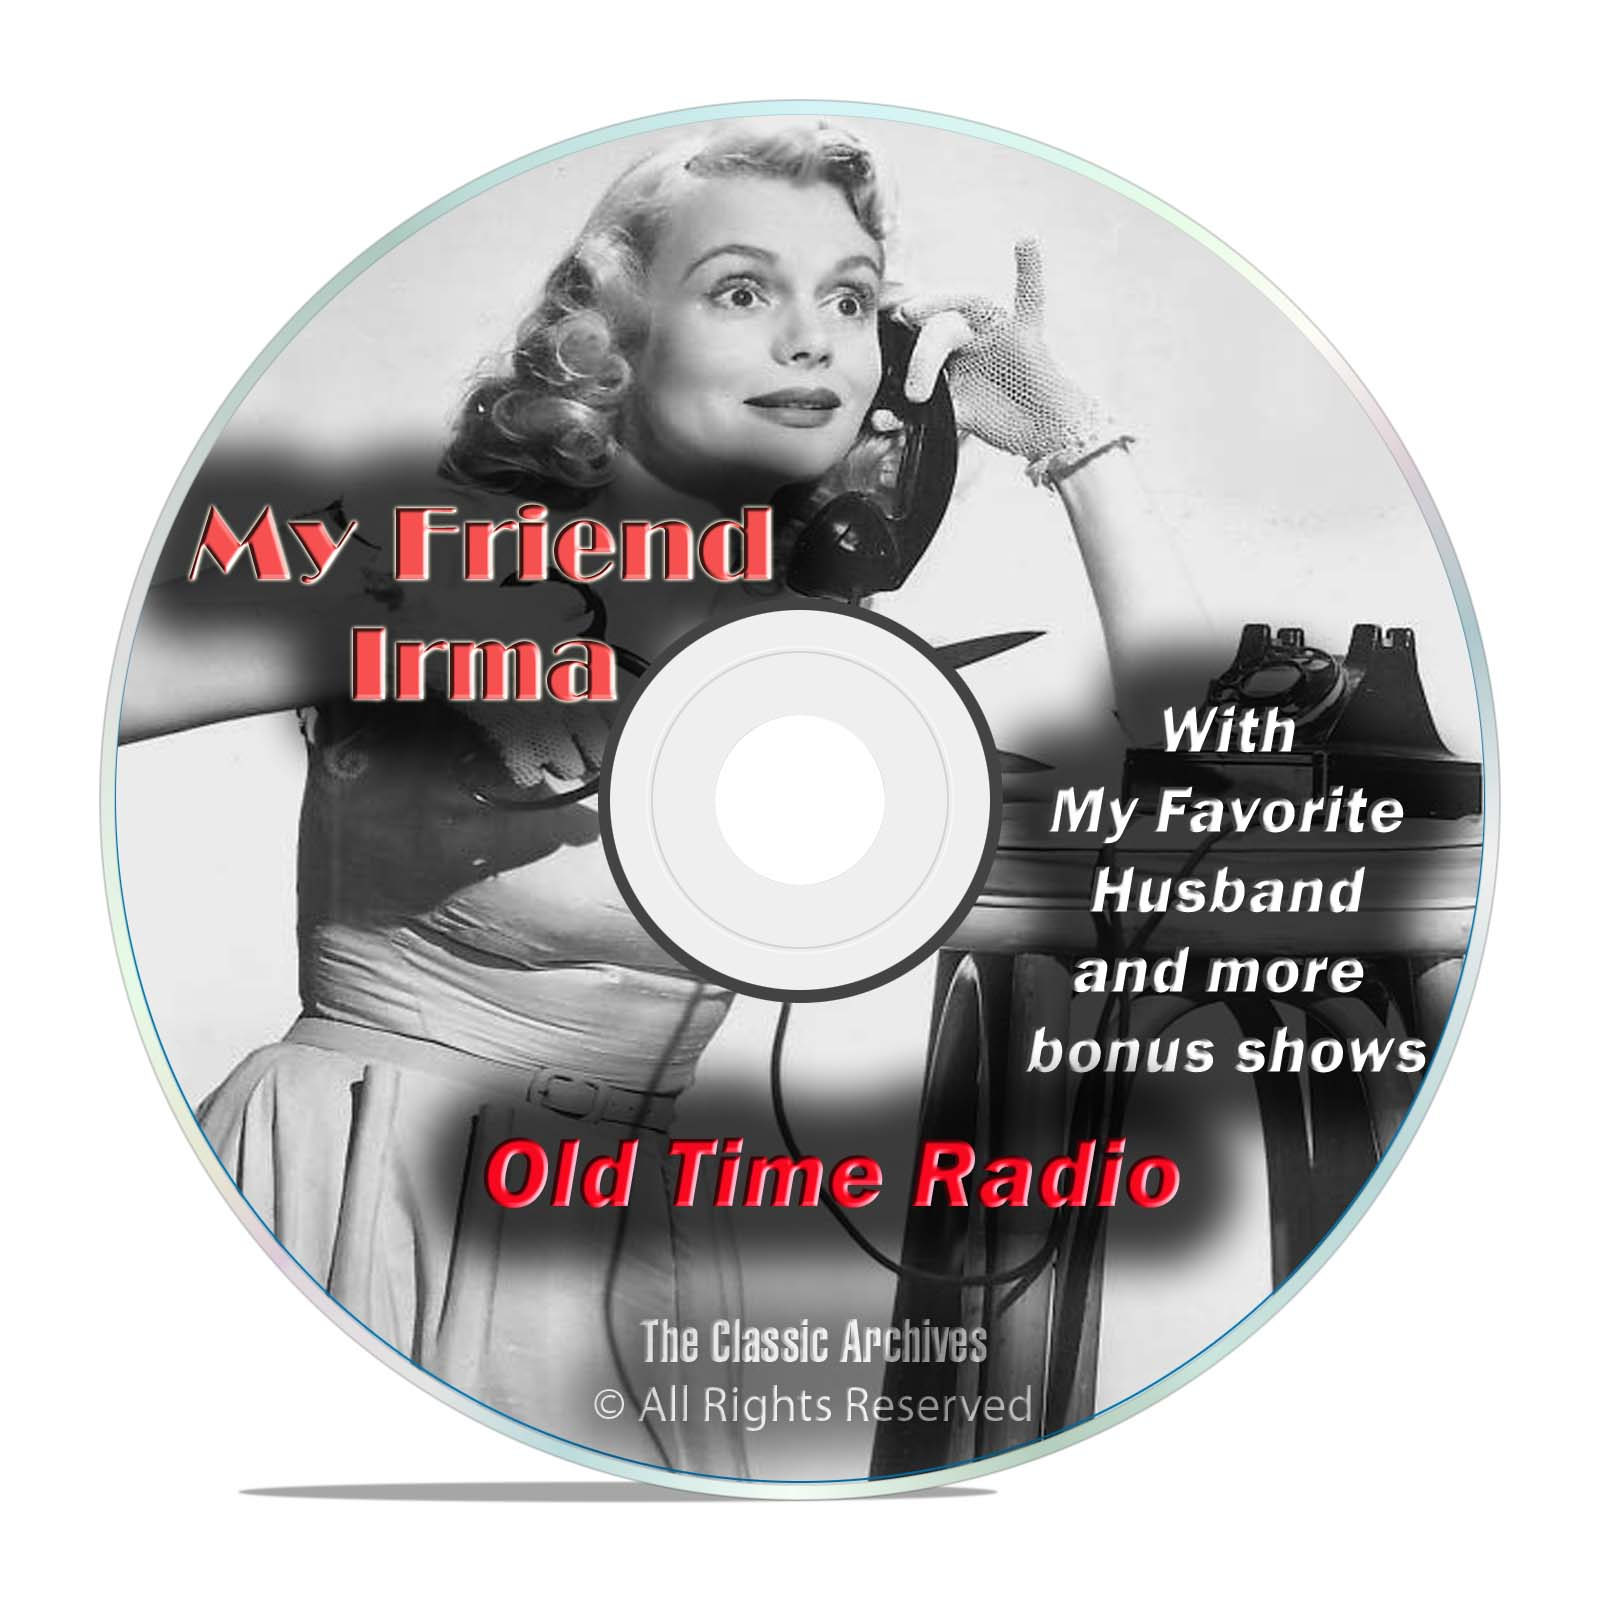 My Friend Irma, + My Favorite Husband, 596 Old Time Radio Shows, OTR, DVD